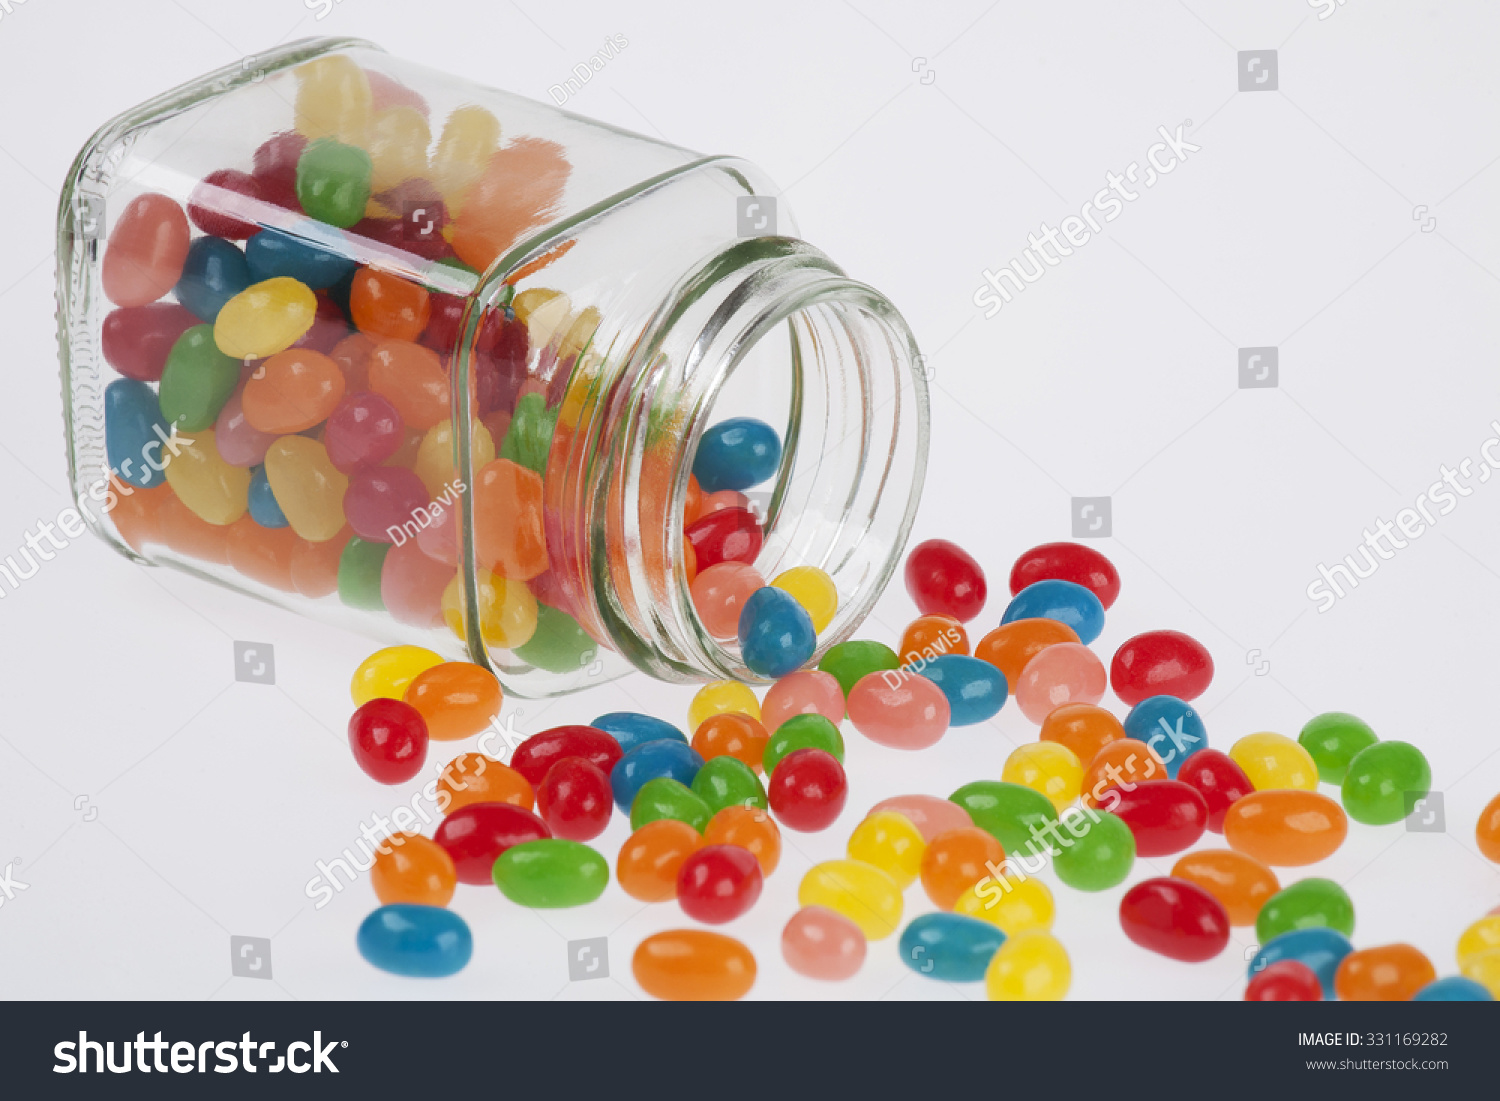 Close Up Of A Delicious Jelly Beans Candy Spilled From A Glass Jar Isolated On A White